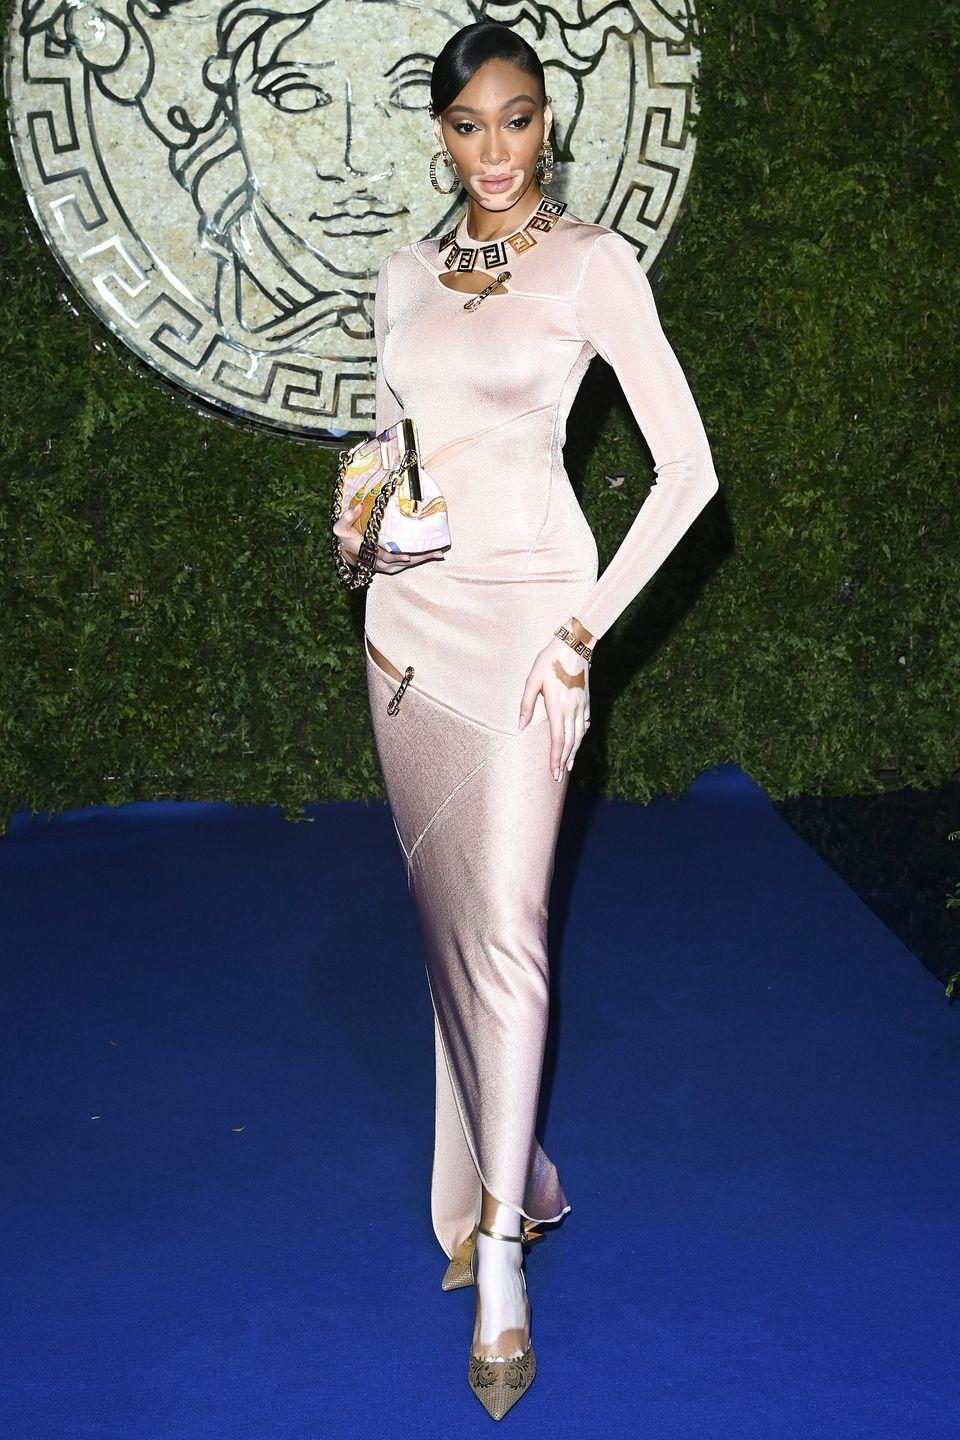 <p><strong>26 September</strong></p><p>Model Winnie Harlow in a floor-length baby pink gown at the Fendi x Versace event. </p>